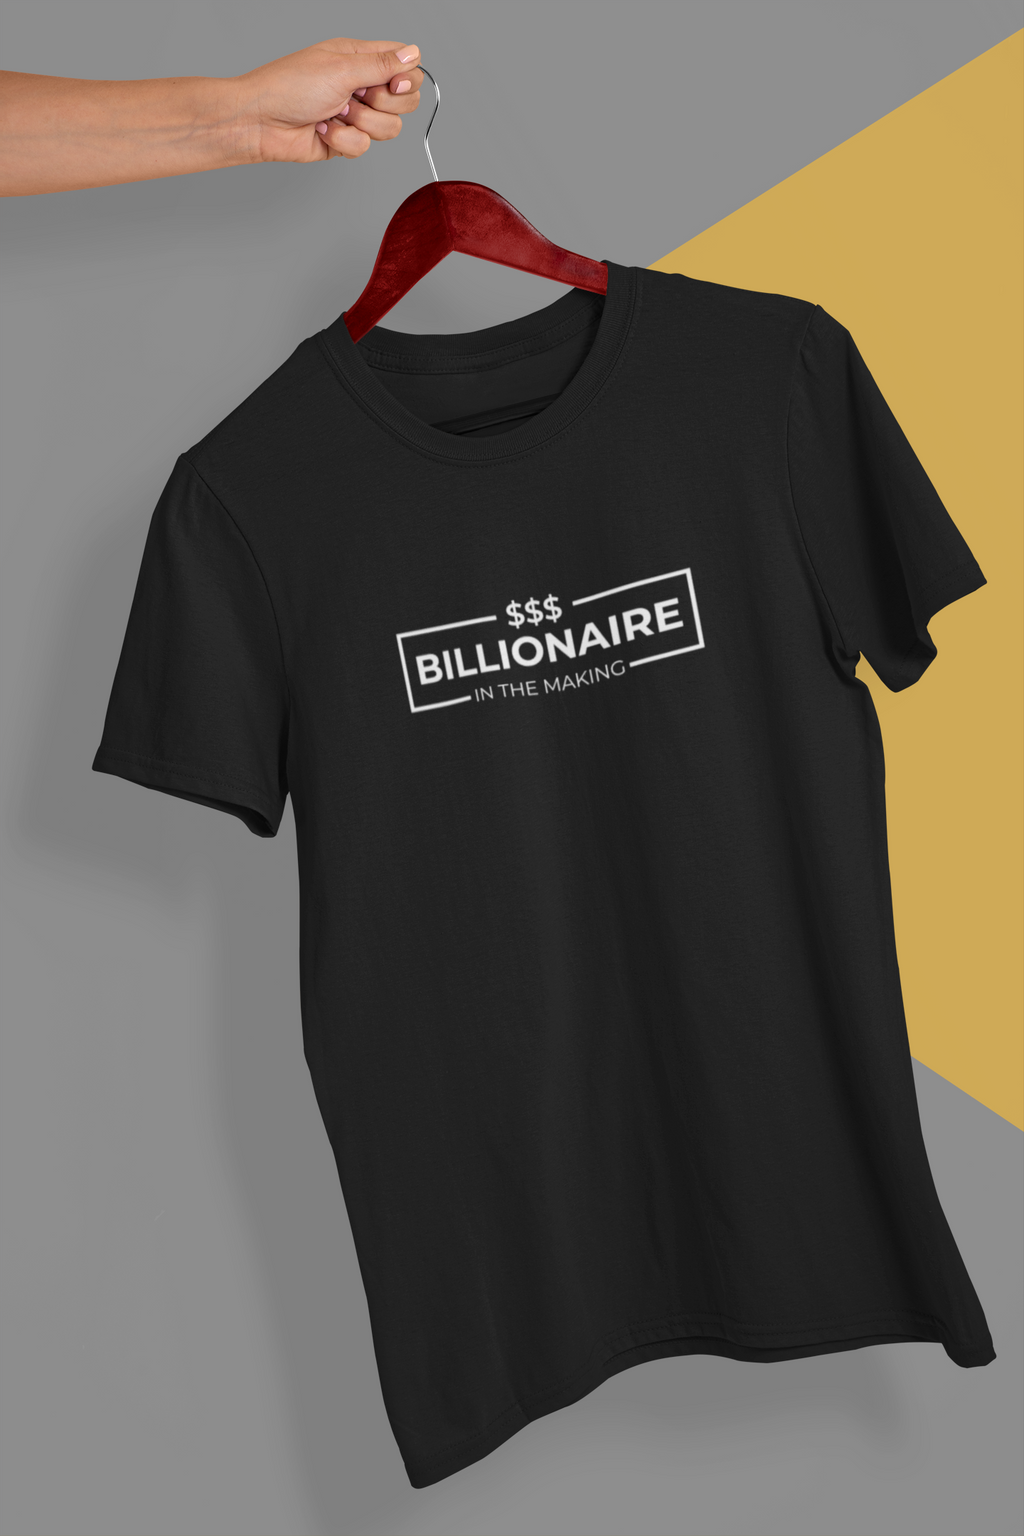 Billionaire in the making